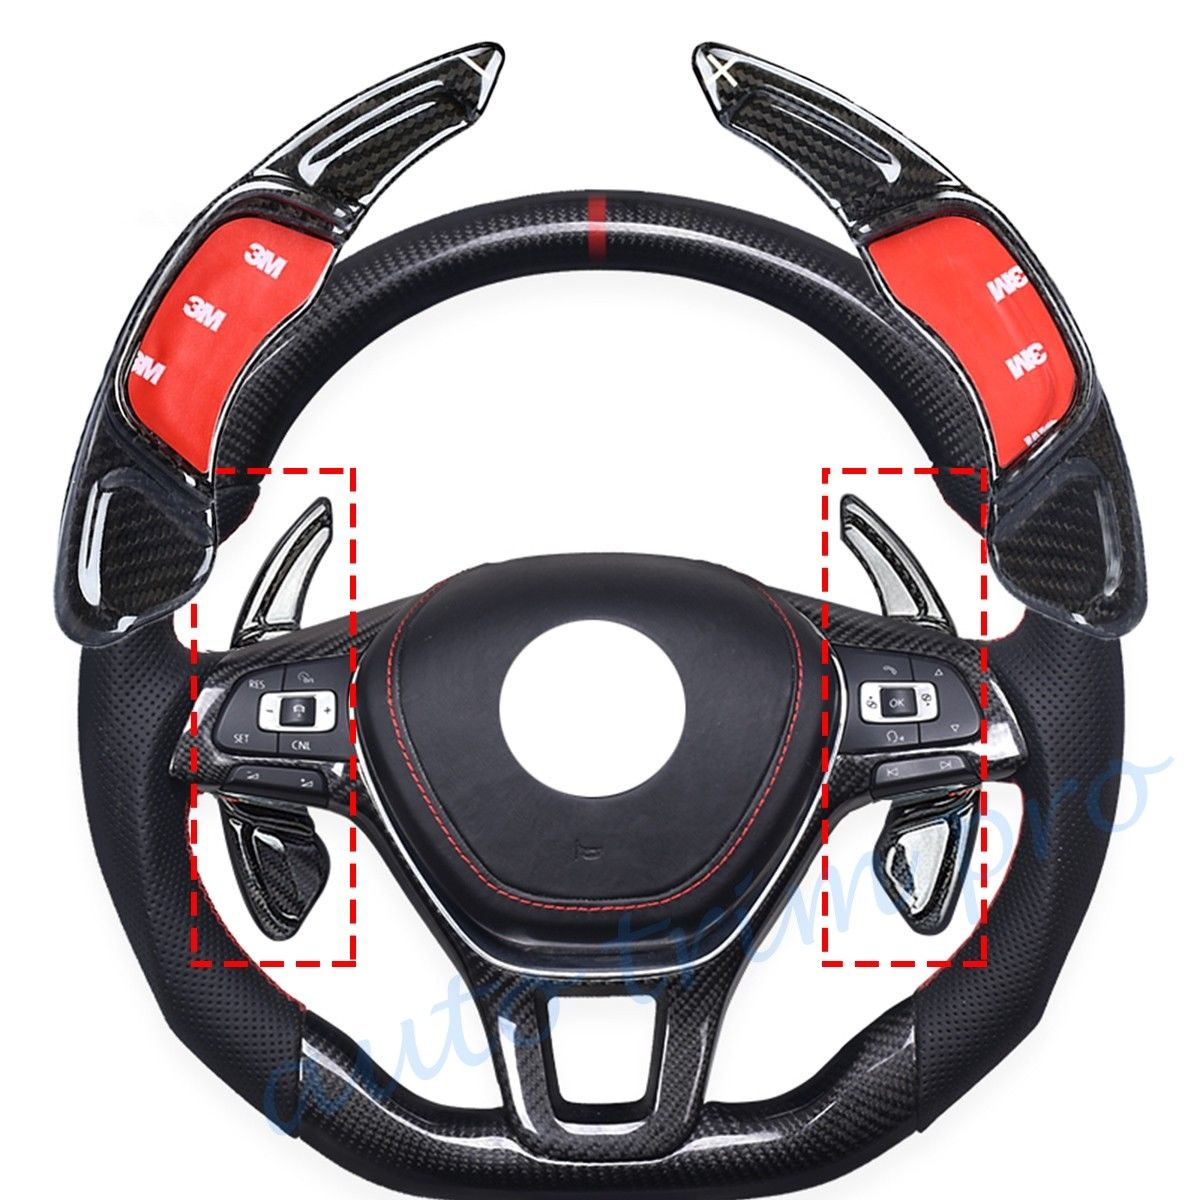 DSG Steering Wheel Shift Gear Paddle Shifter Extension Cover Fit For VW Scirocco GTS Golf7 R